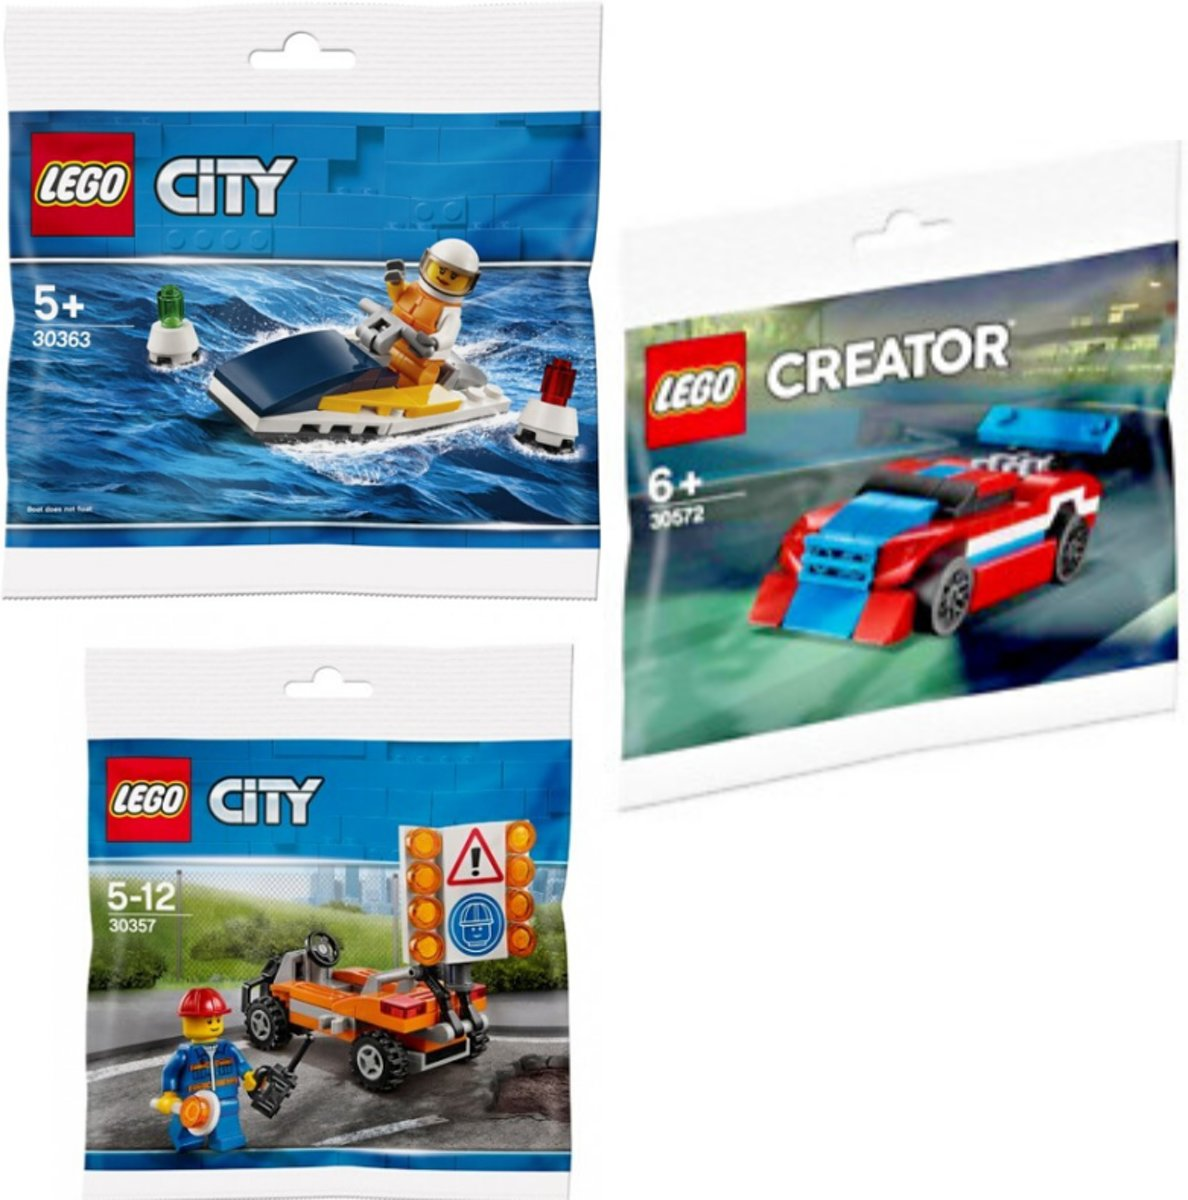 LEGO City bundel - 30357 + 30363 + 30572 (polybags)